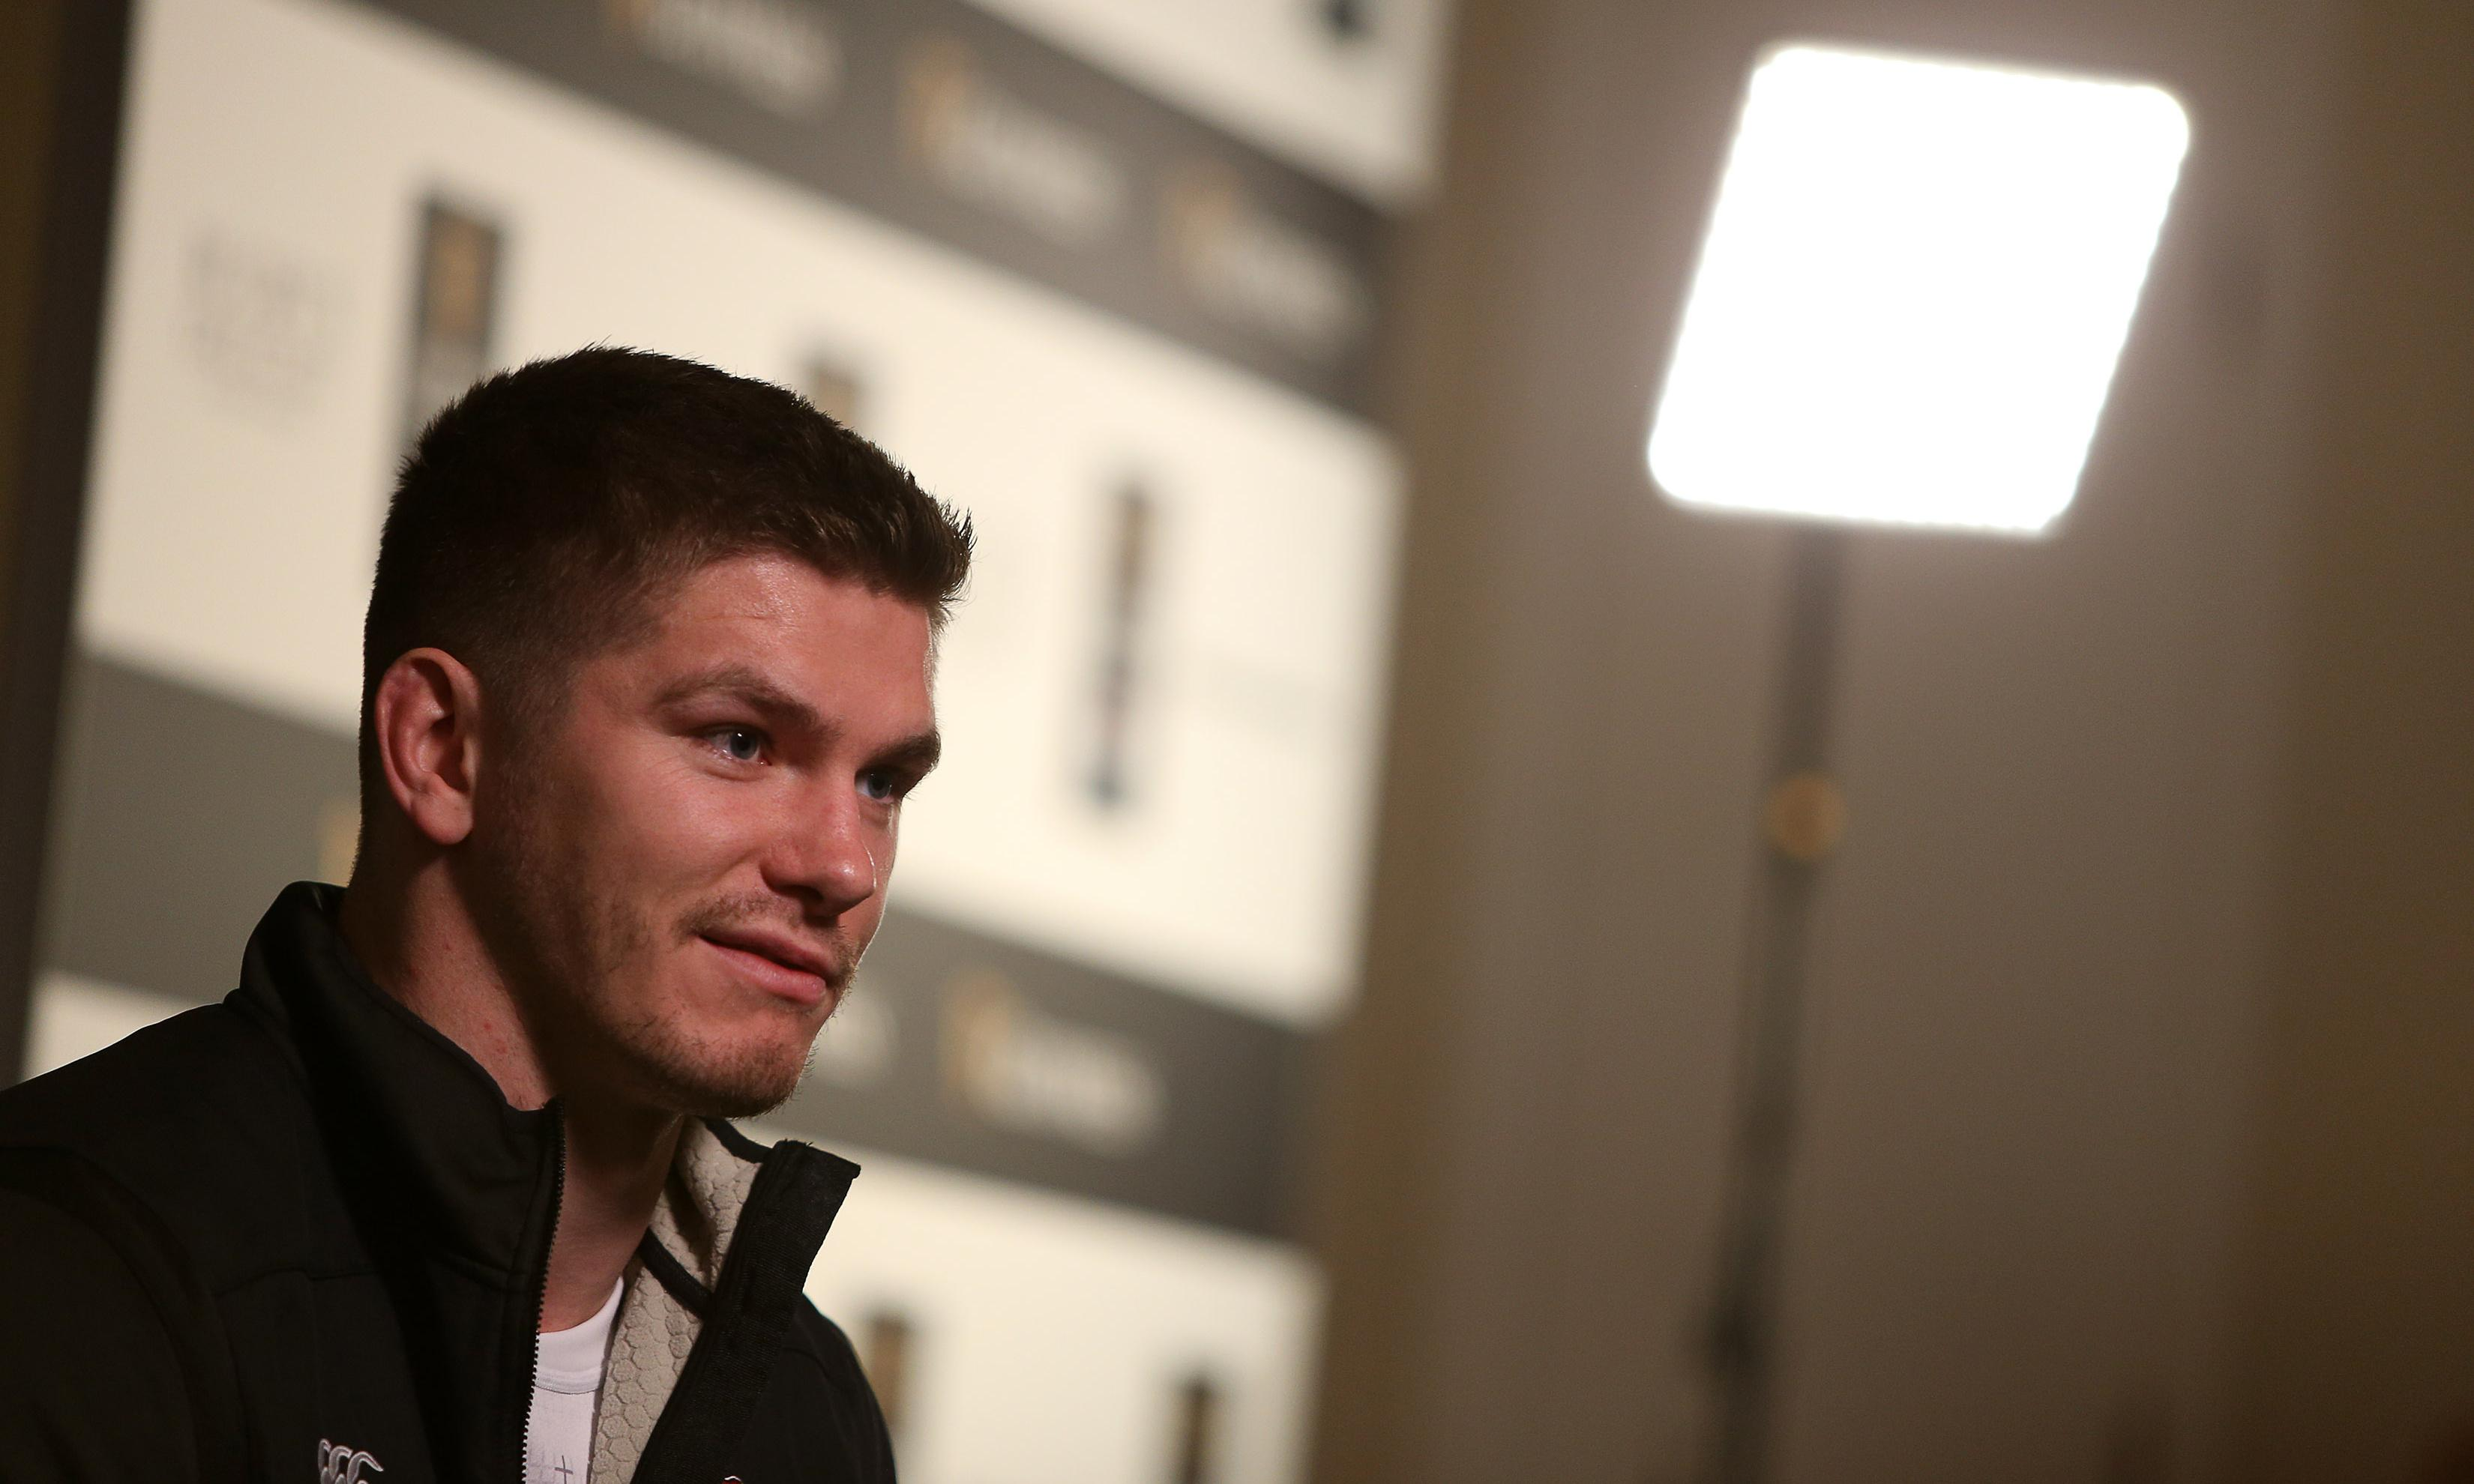 Owen Farrell expects to be fit to face Ireland in England's Six Nations opener